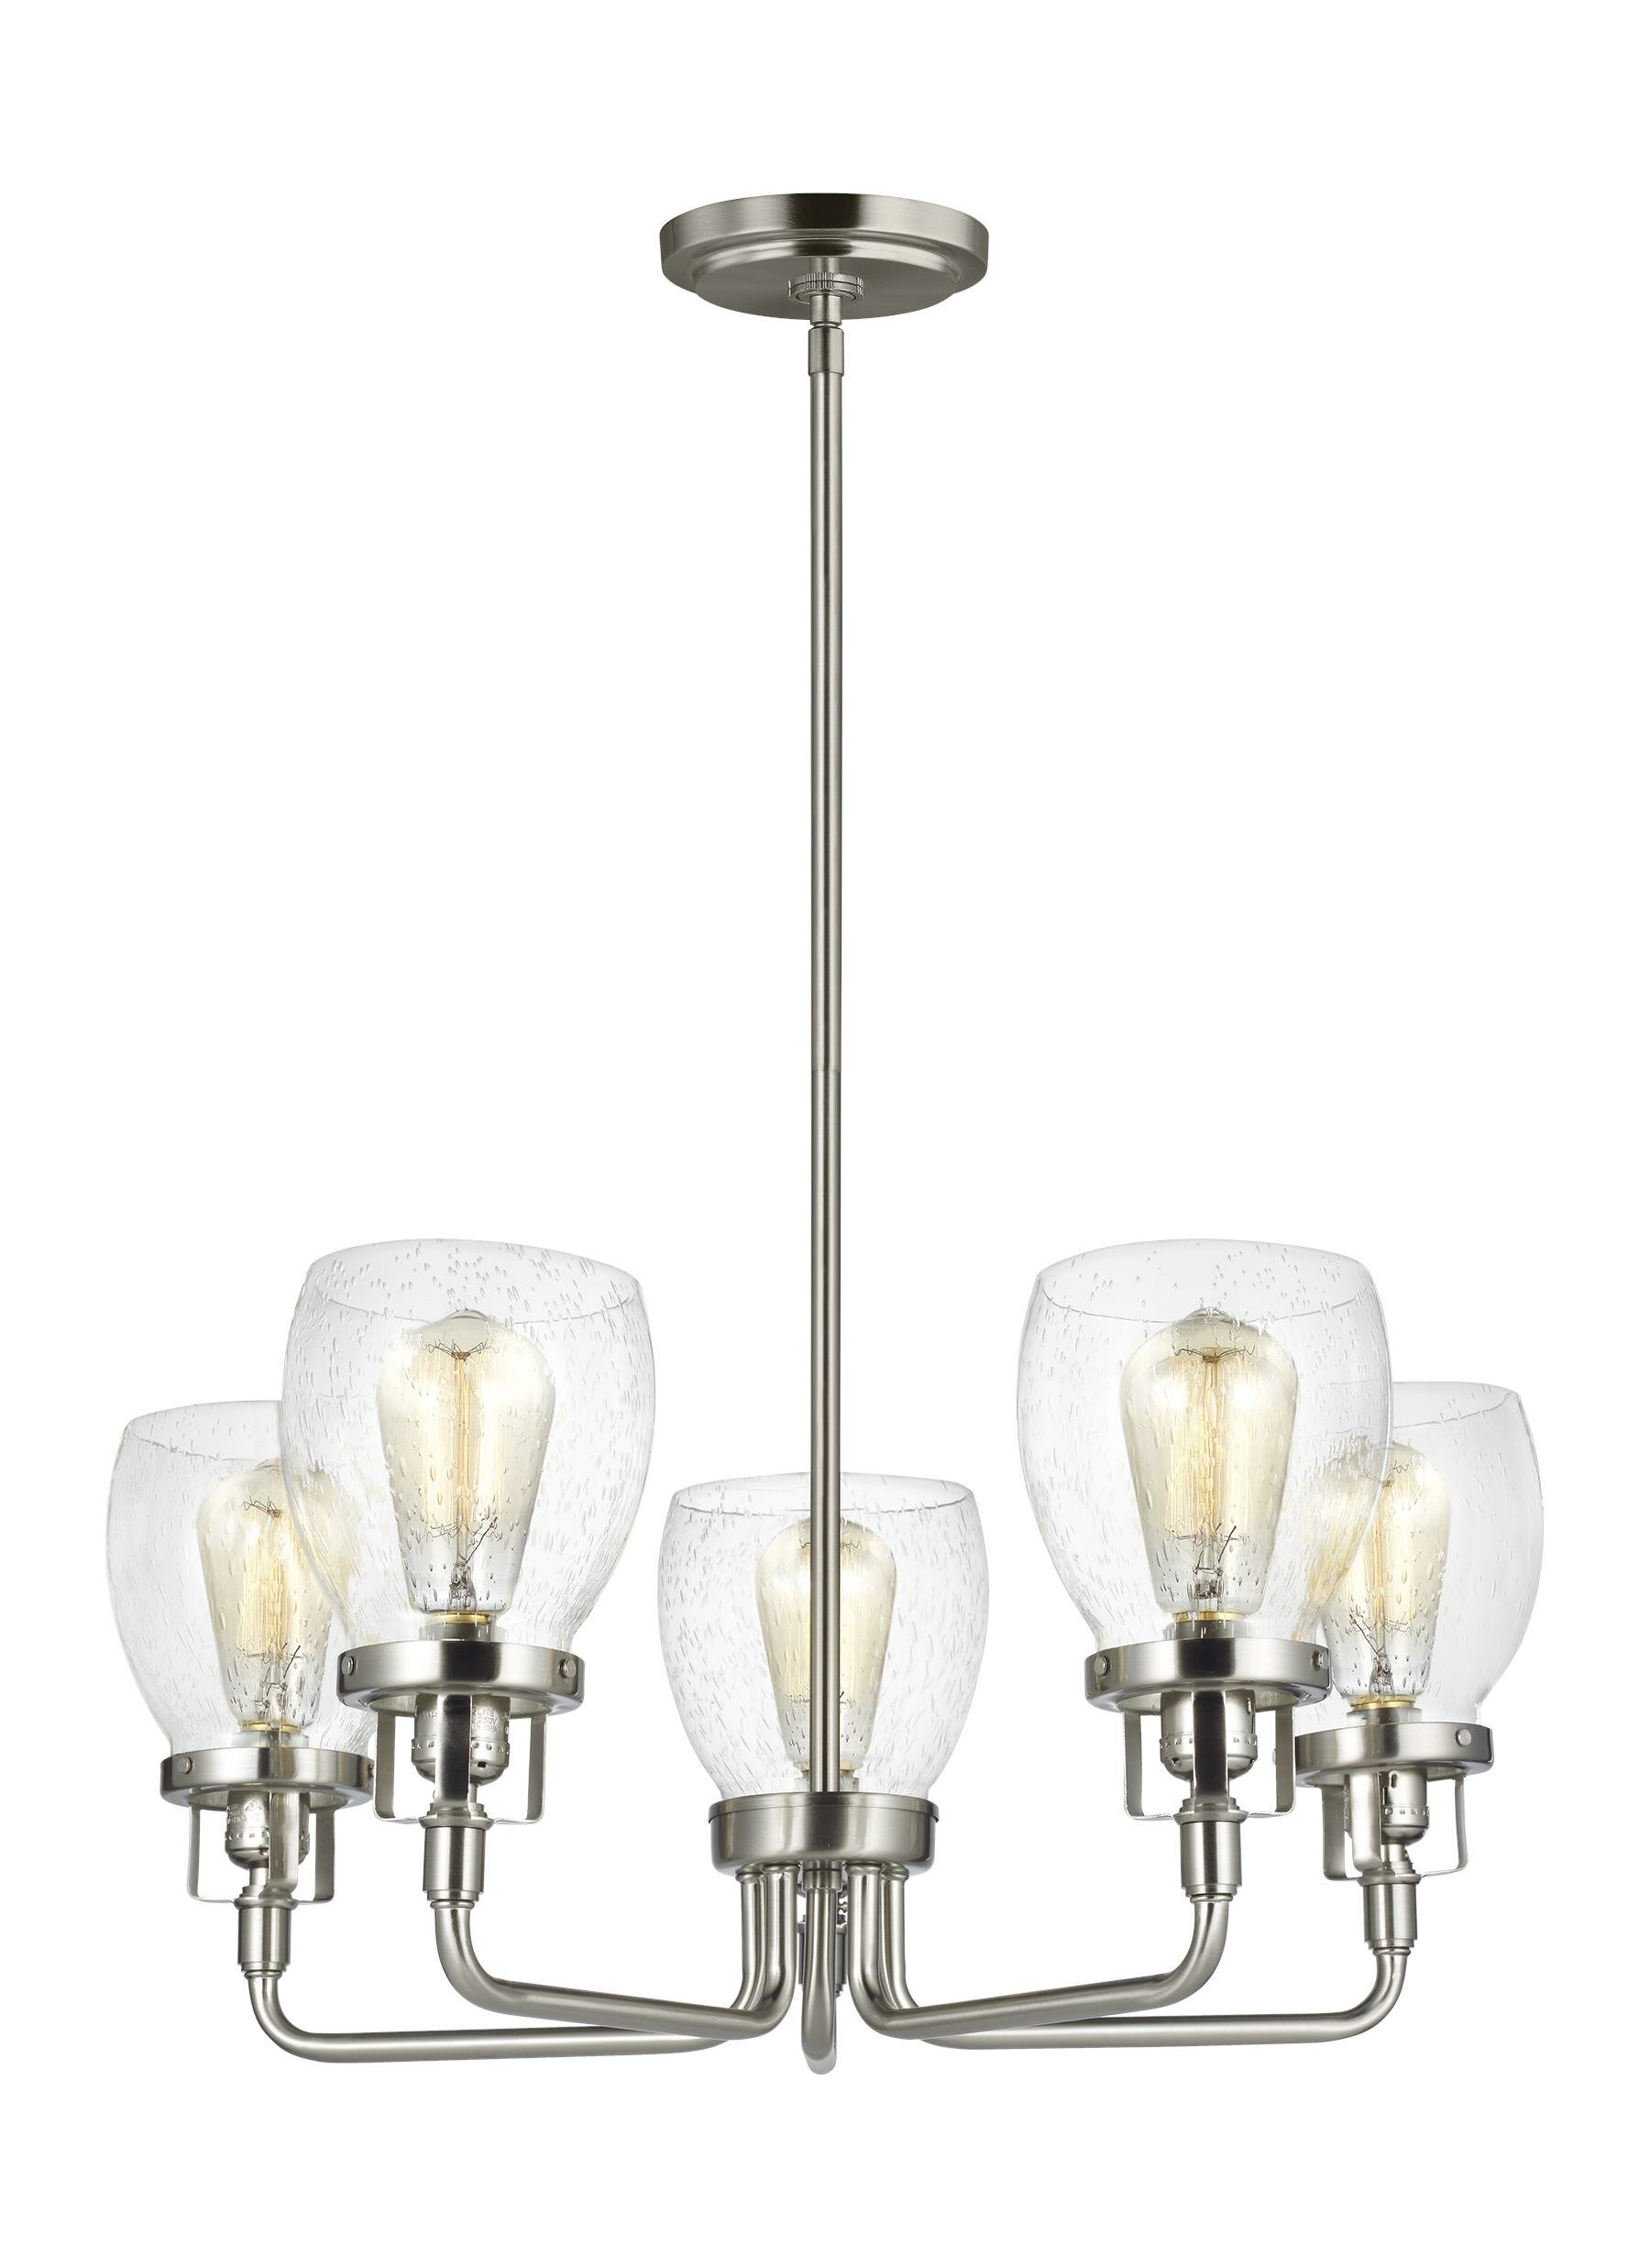 Trent austin design panorama point 5 light candle style chandelier reviews wayfair